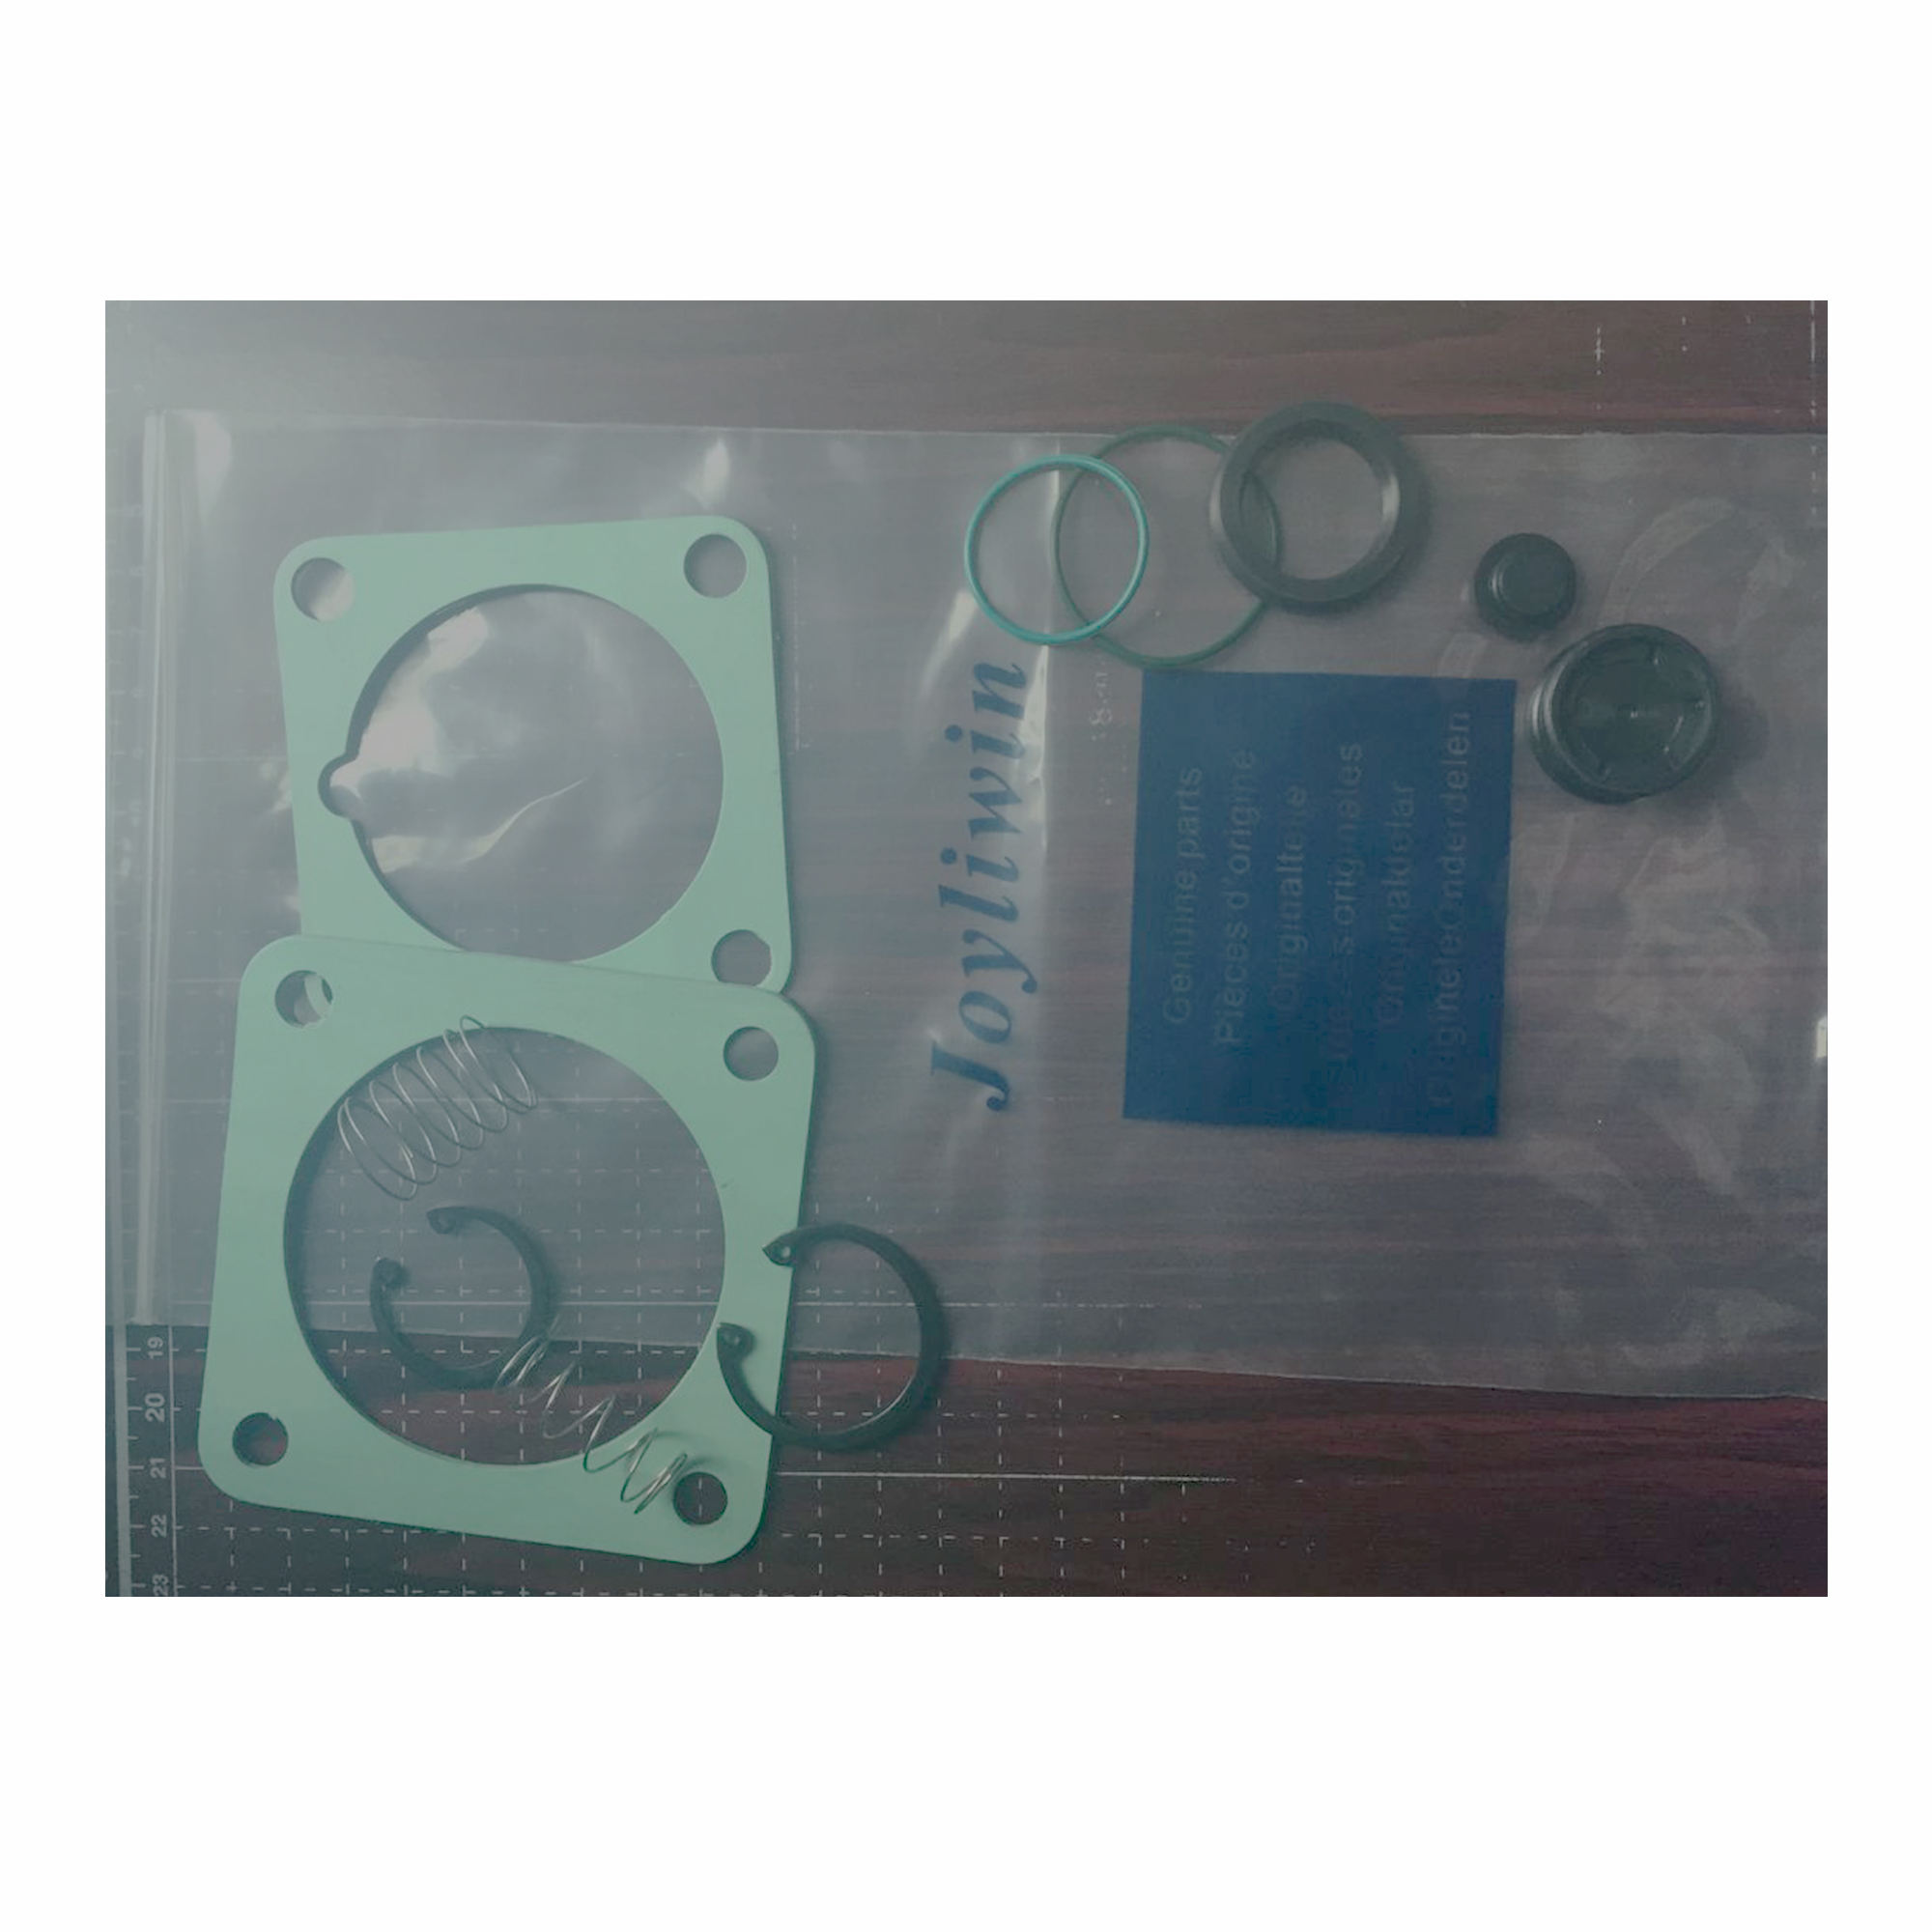 Customized JOY 029801 unloading valve kit for atlas copco air compressor